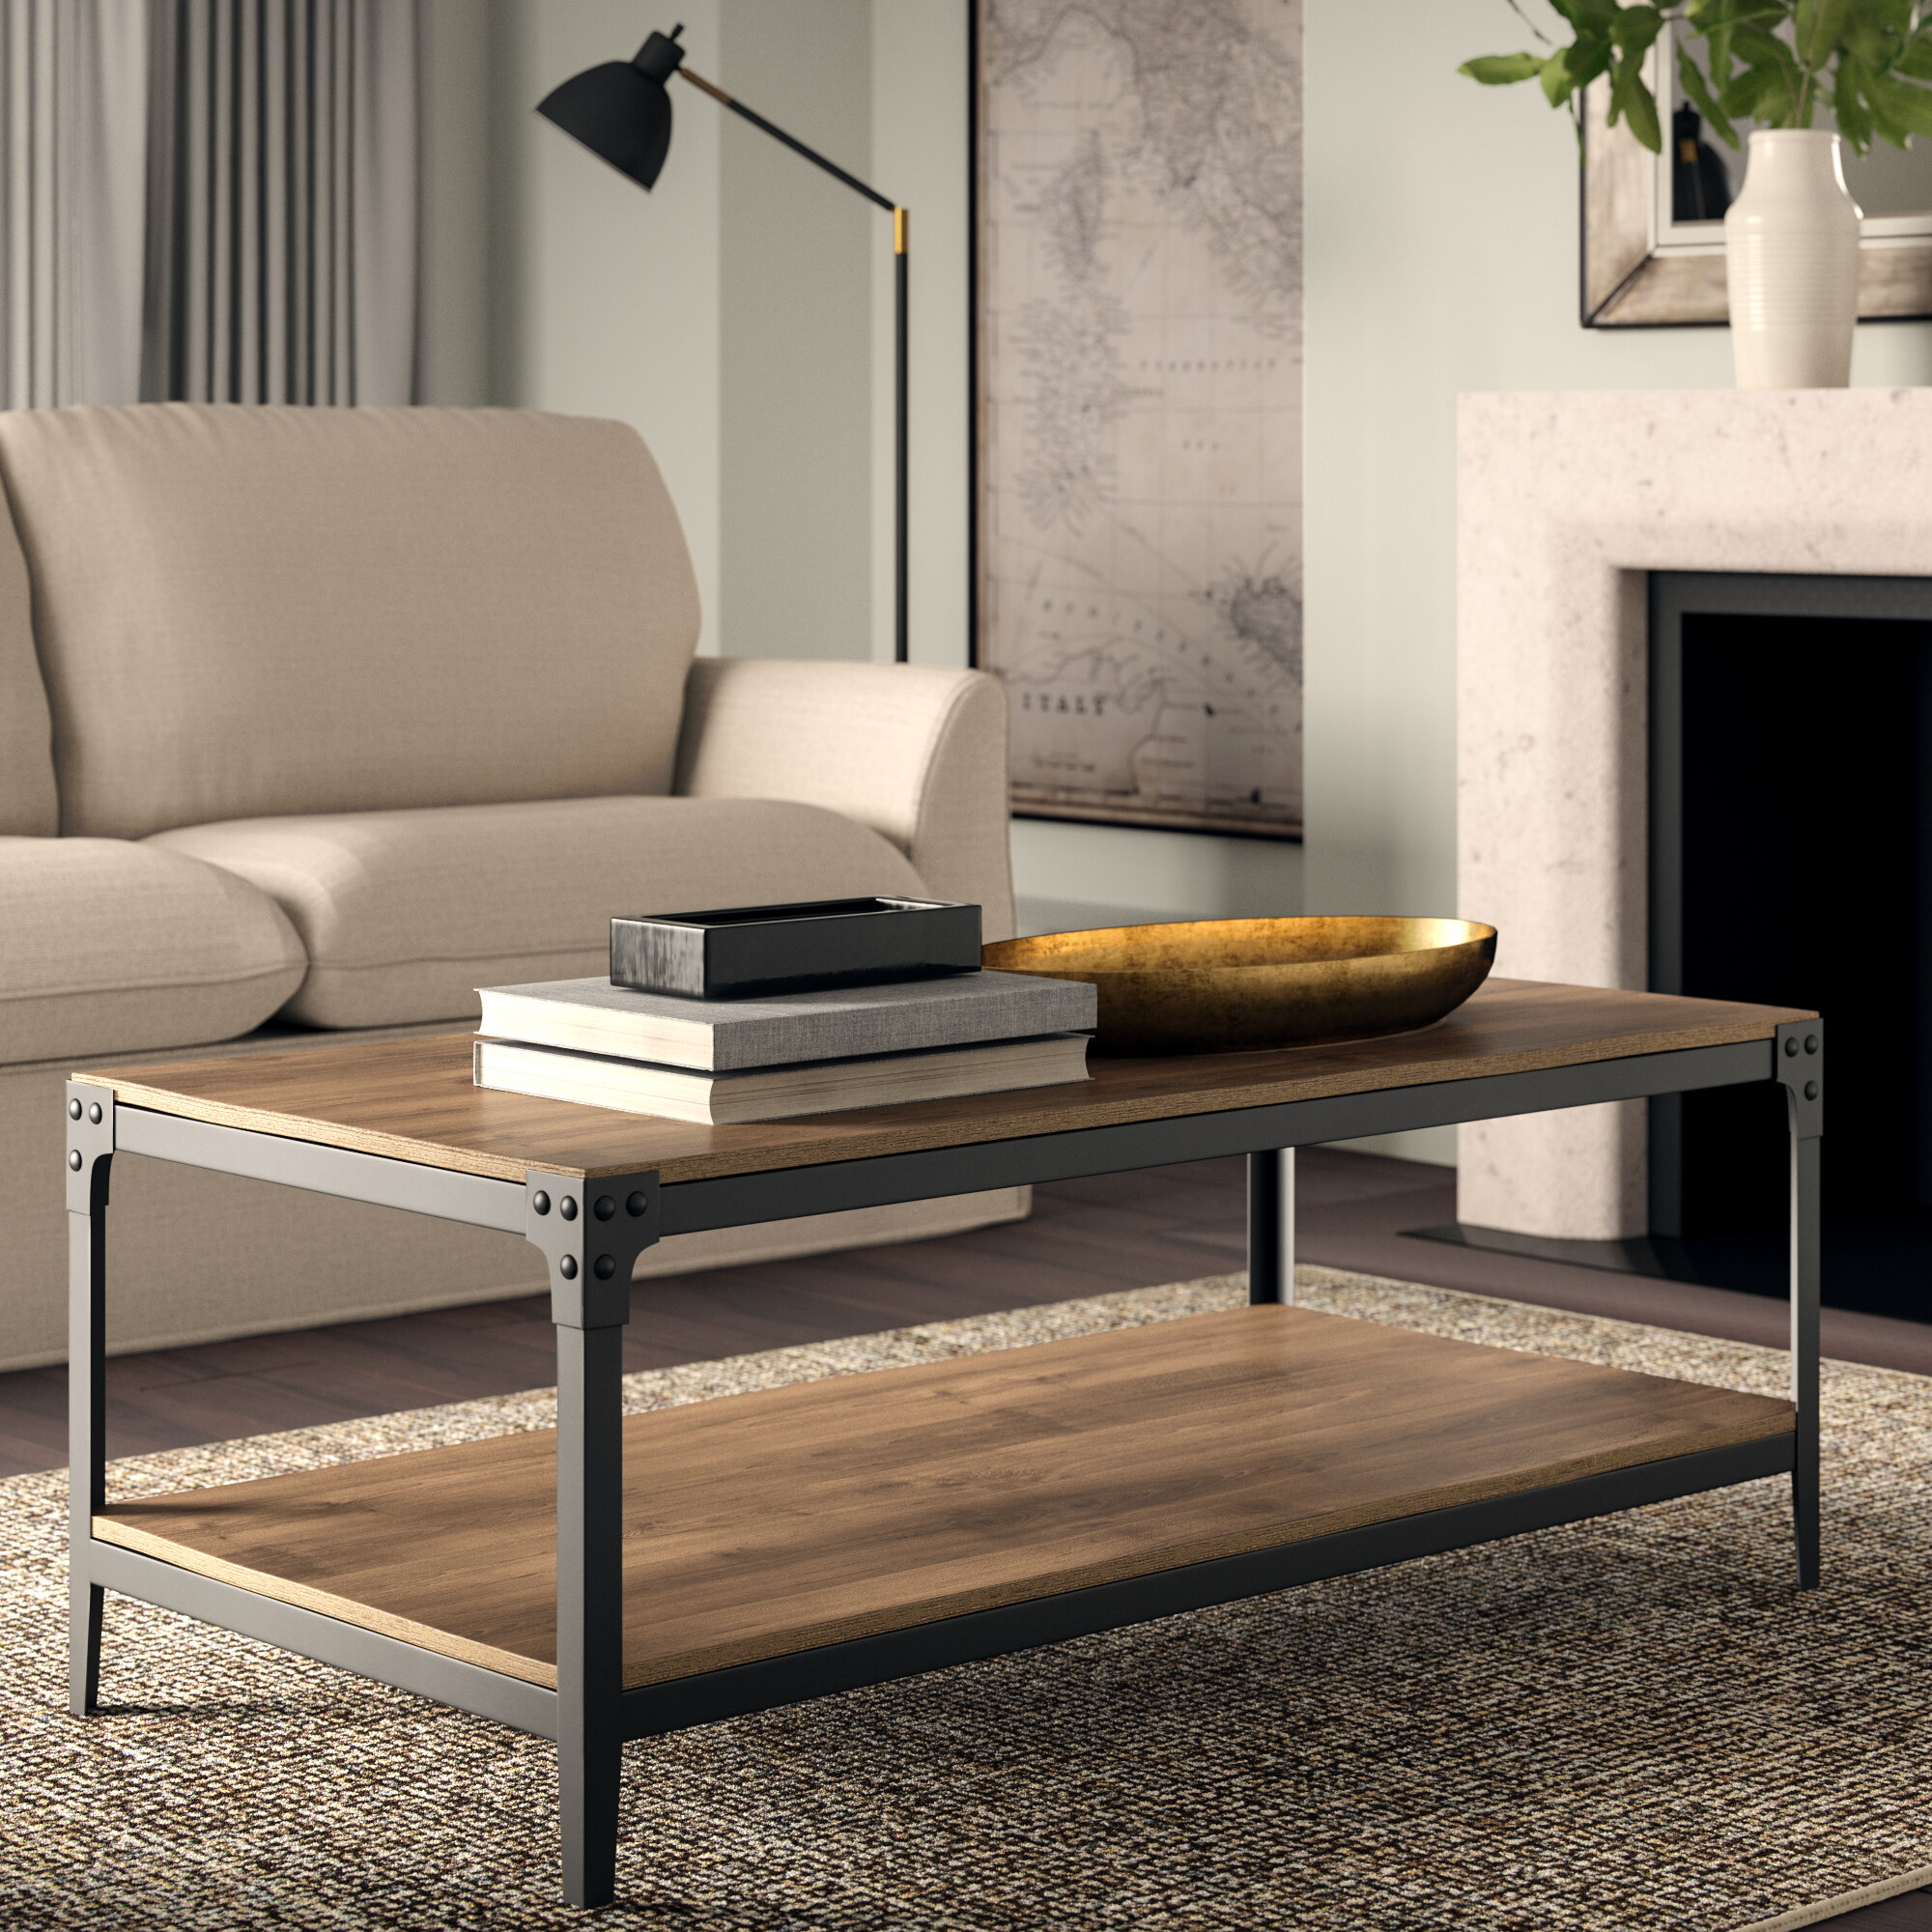 bamboo source tropical home decor with red sofa and blue.htm coffee tables you ll love in 2020 wayfair  coffee tables you ll love in 2020 wayfair